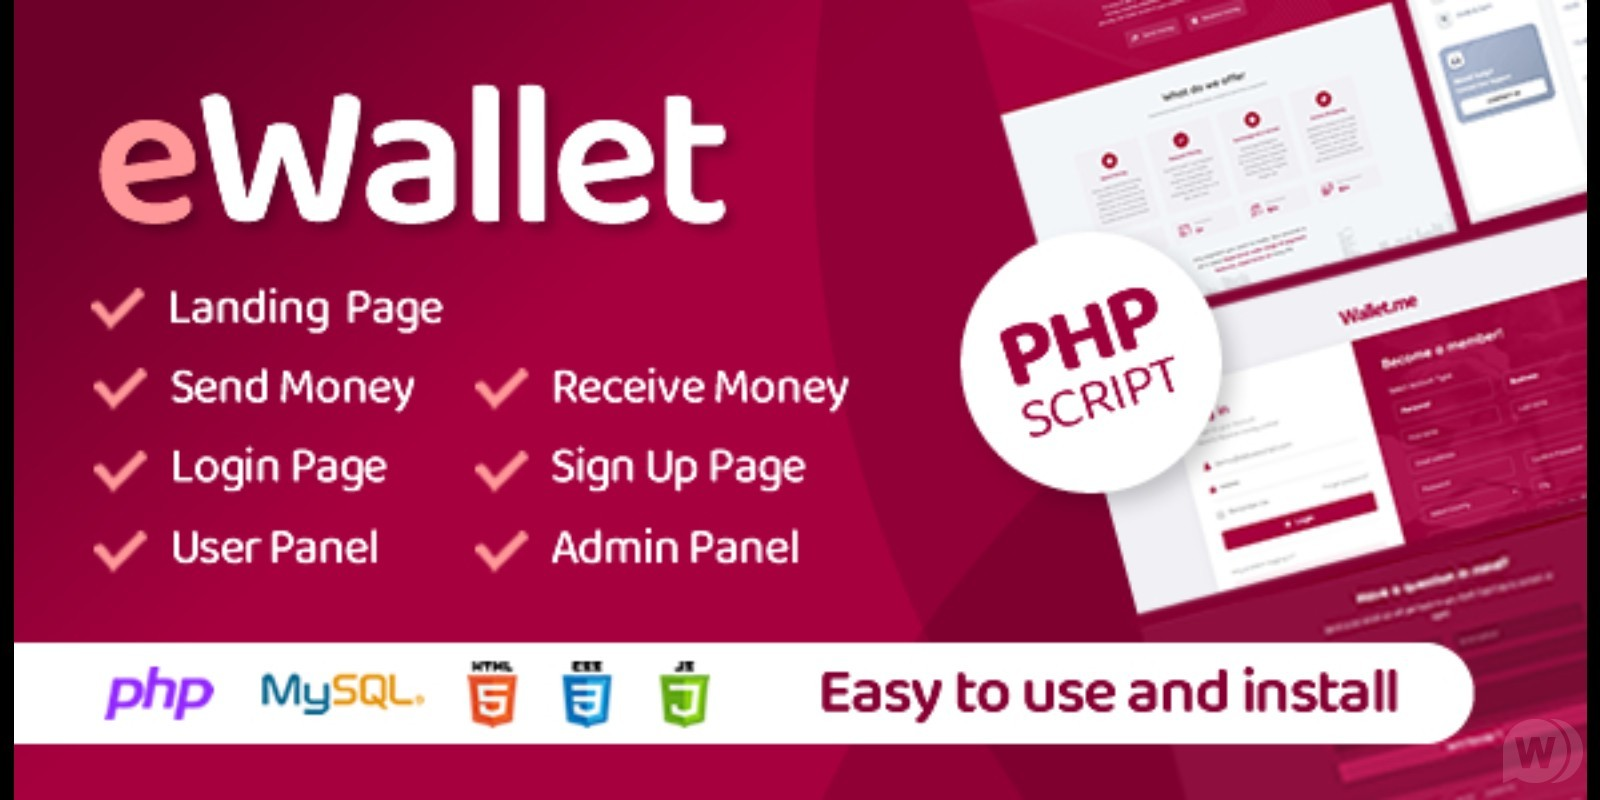 eWallet v3. 0-script for an electronic wallet or payment gateway